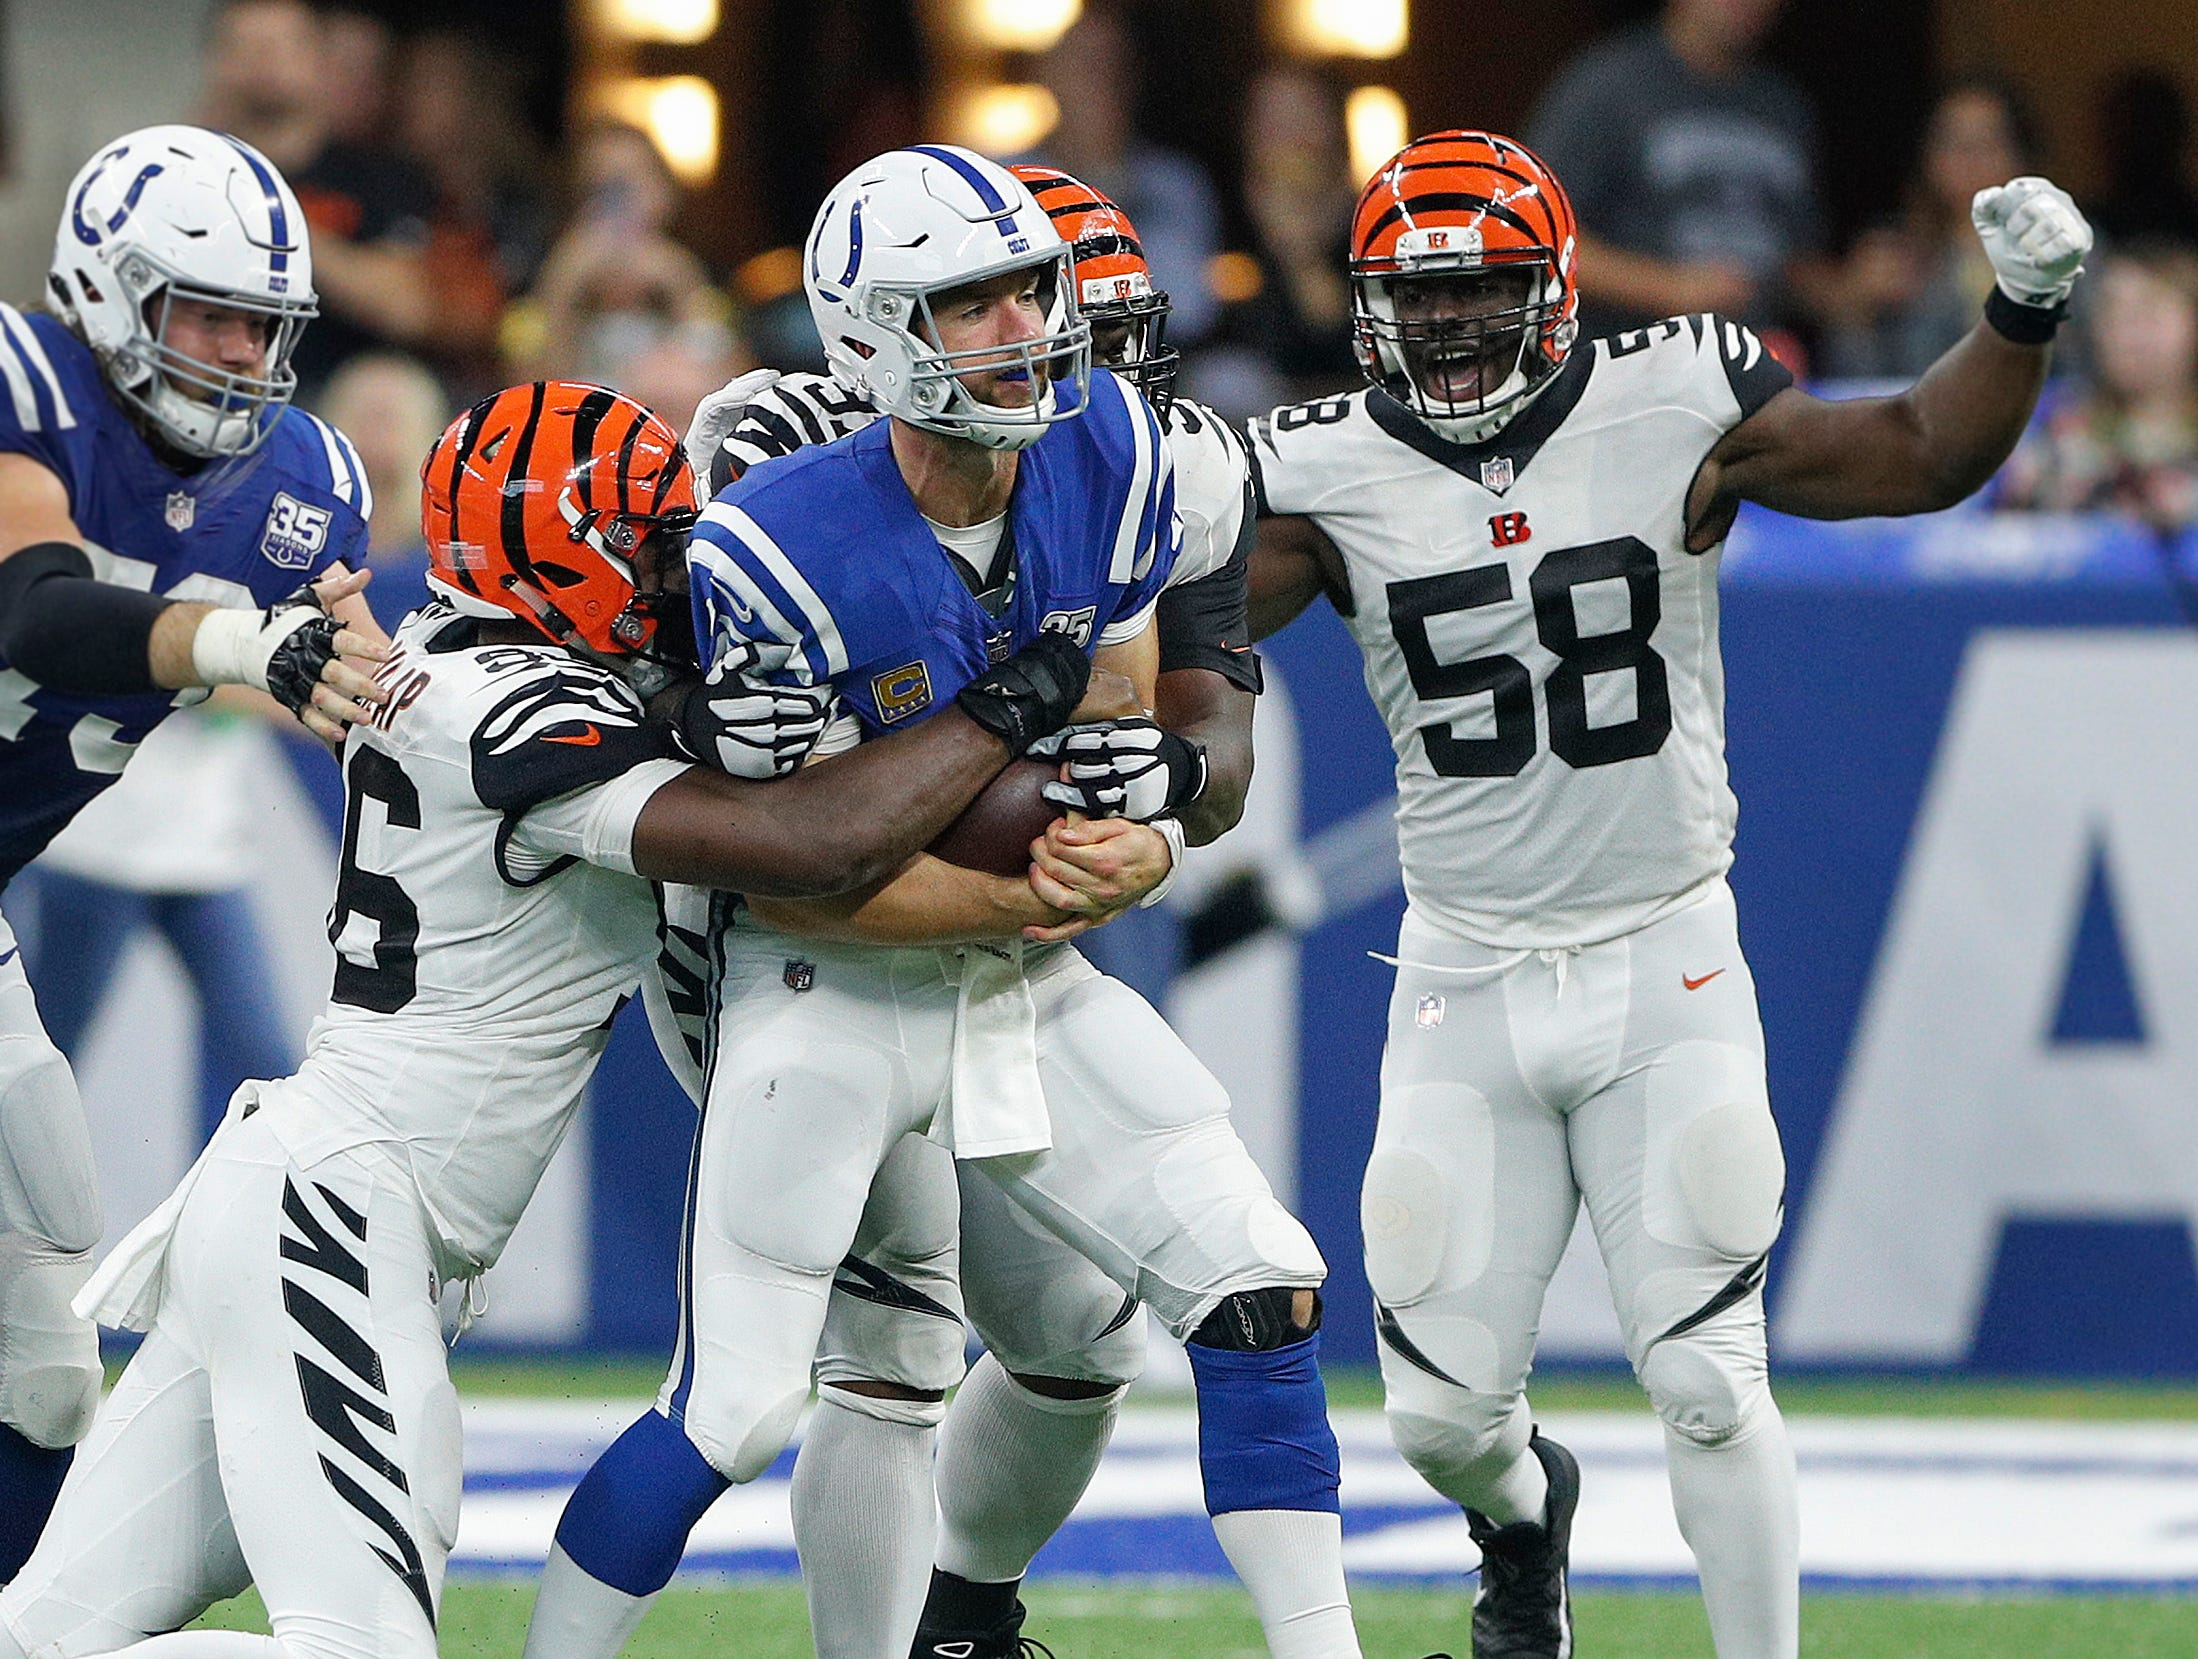 Indianapolis Colts quarterback Andrew Luck (12) is sacked by Cincinnati Bengals defensive end Carlos Dunlap (96) and  defensive end Al-Quadin Muhammad (97) in the second half of their game at Lucas Oil Stadium on Sept. 9, 2018. The Indianapolis Colts lost to the Cincinnati Bengals 34-23.